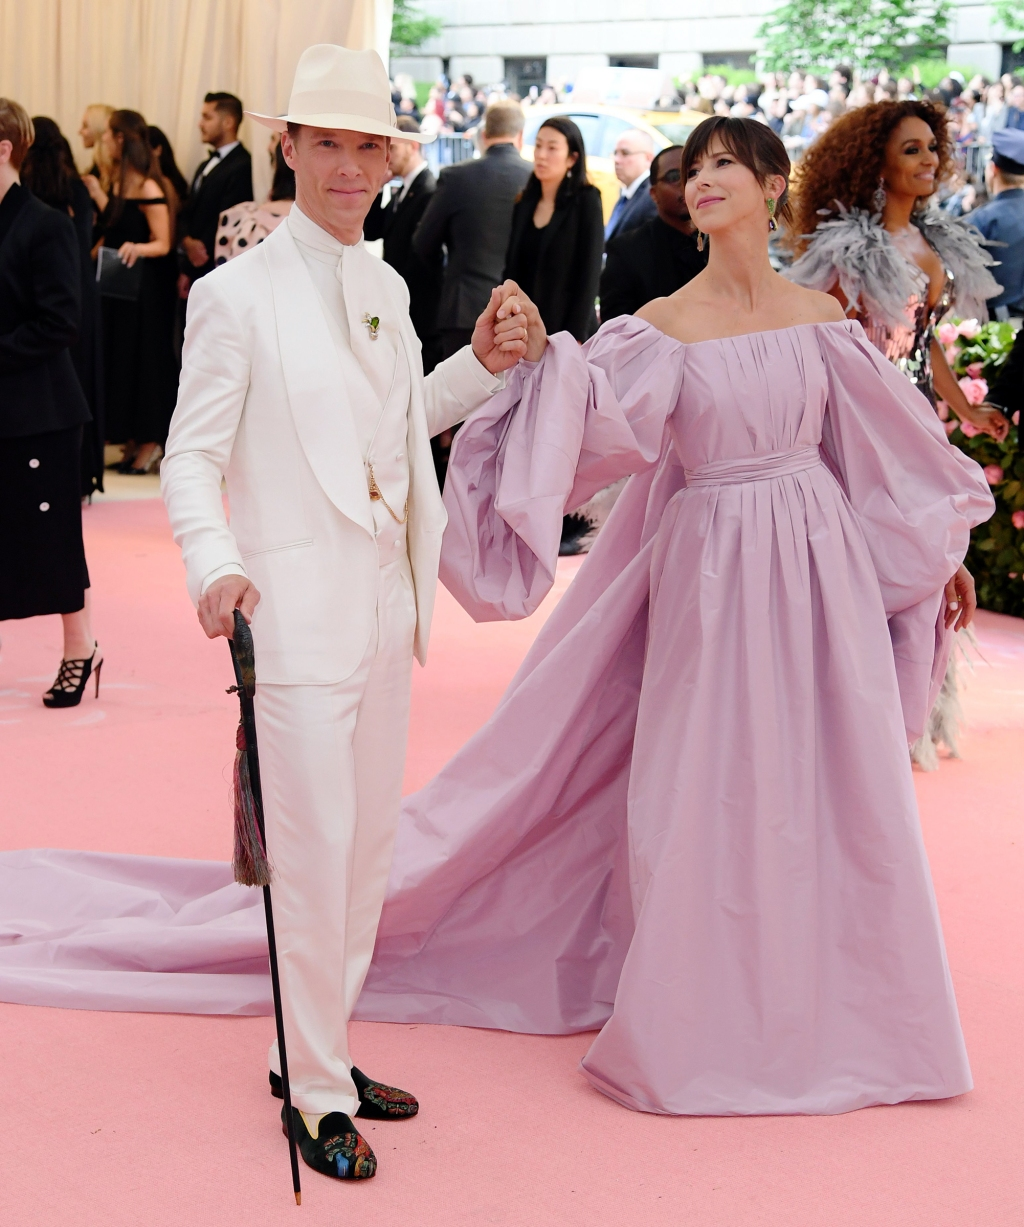 Benedict Cumberbatch and Sophie Hunter attend The 2019 Met Gala Celebrating Camp: Notes on Fashion at Metropolitan Museum of Art on May 06, 2019 in New York City.